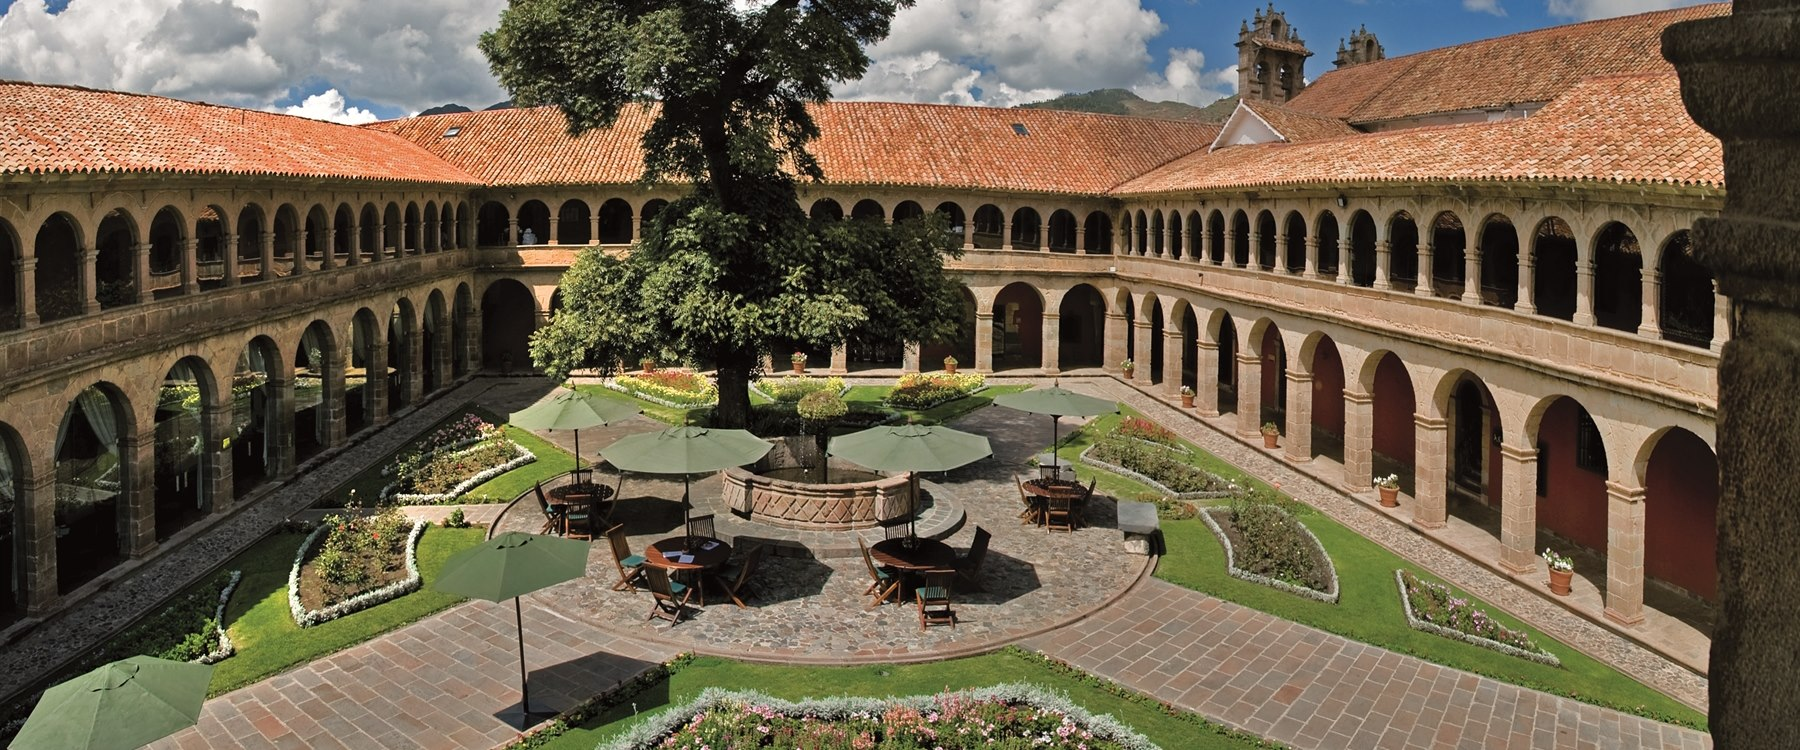 beautiful grounds, Belmond Hotel Monasterio